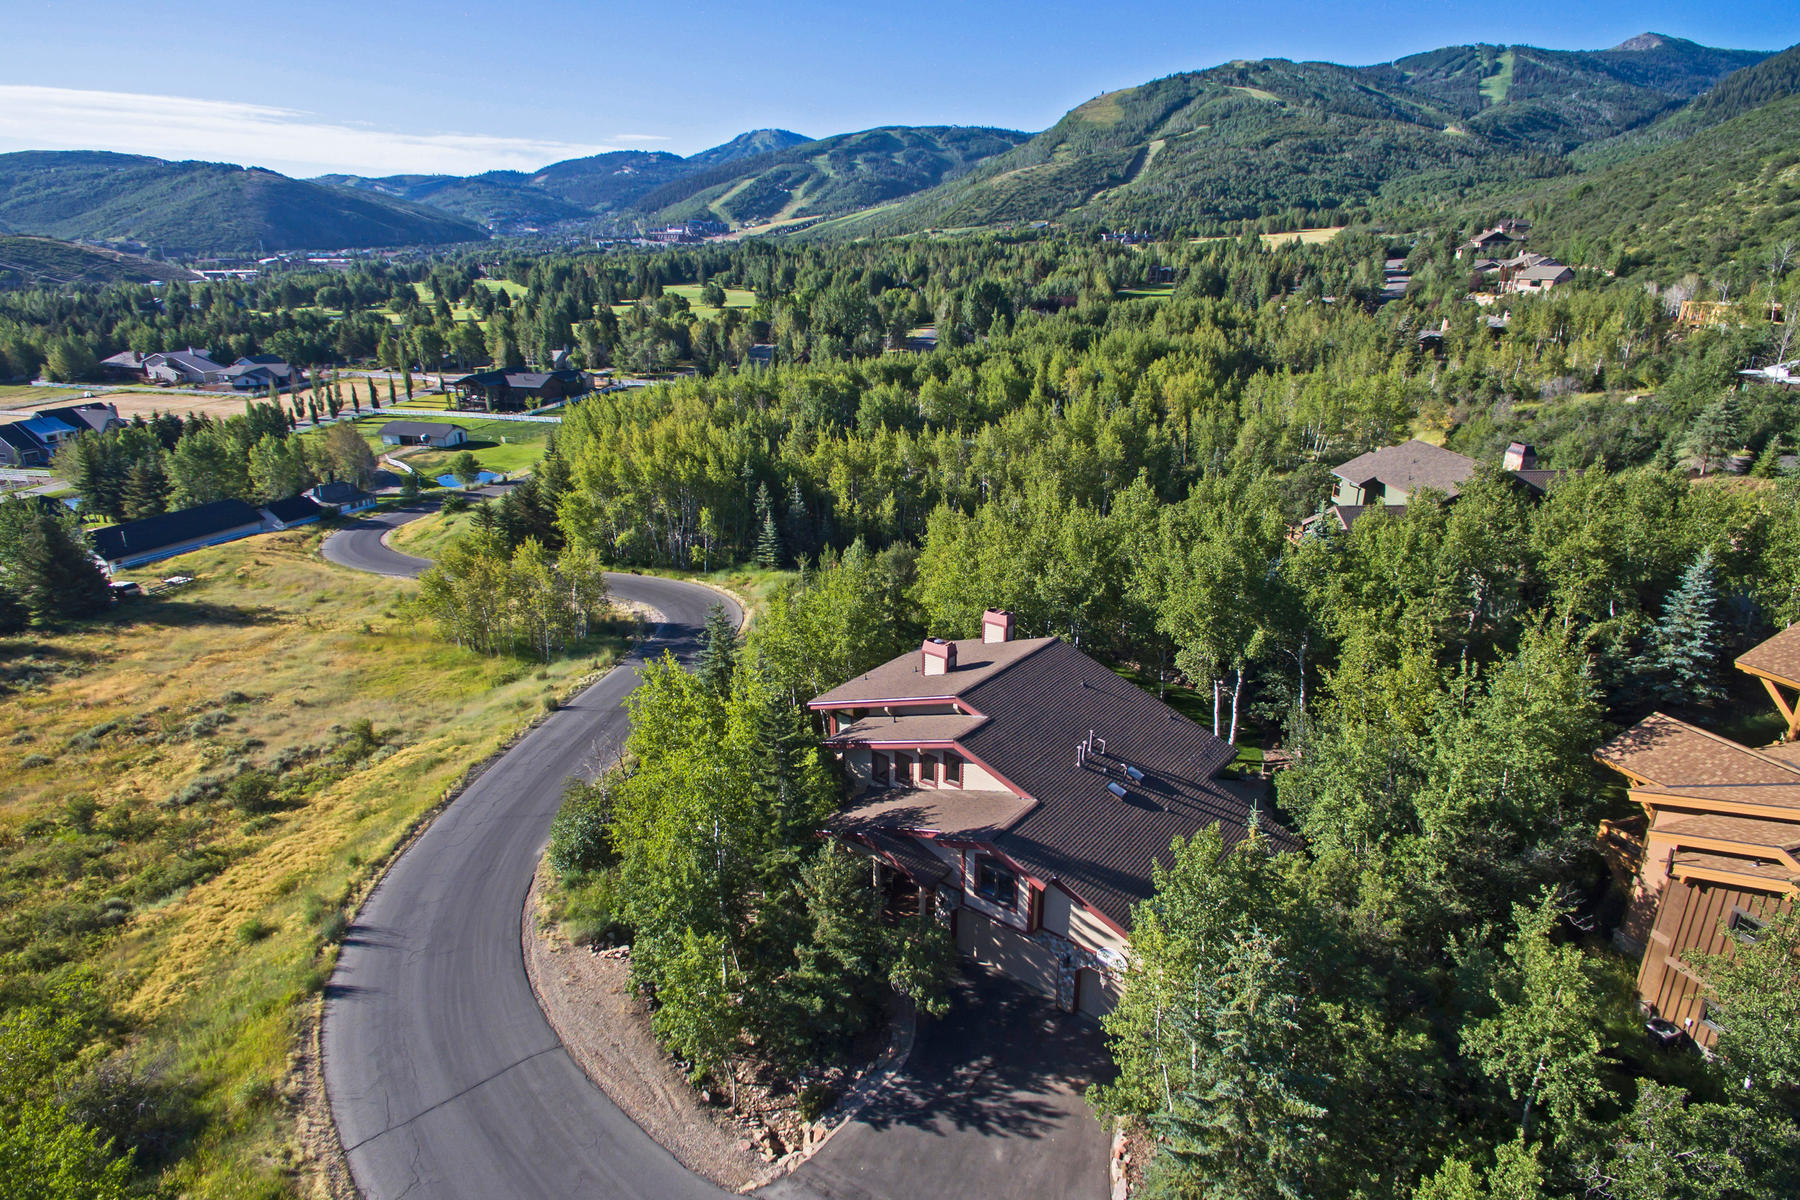 Single Family Home for Sale at Resort Views and Privacy in Iron Canyon 2410 Iron Canyon Dr Park City, Utah, 84060 United States